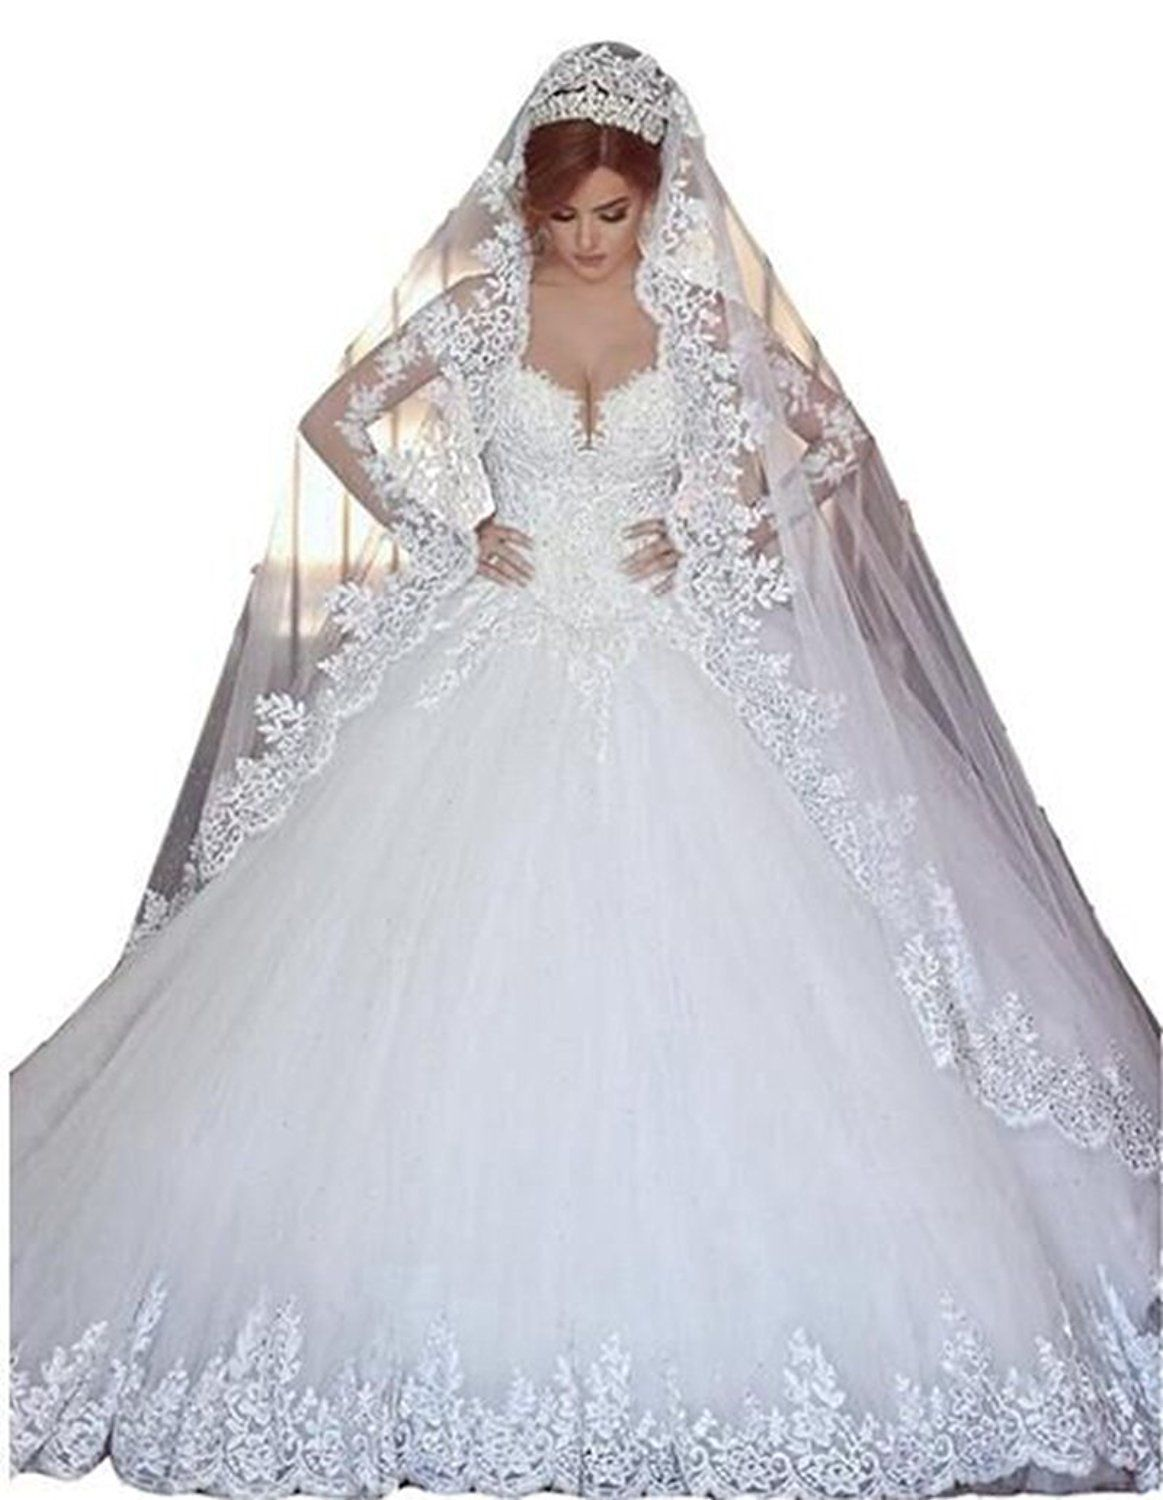 Long veil wedding dresses  Angela Womenus Lace Long Sleeves Ball Gown Tulle Wedding Dress With